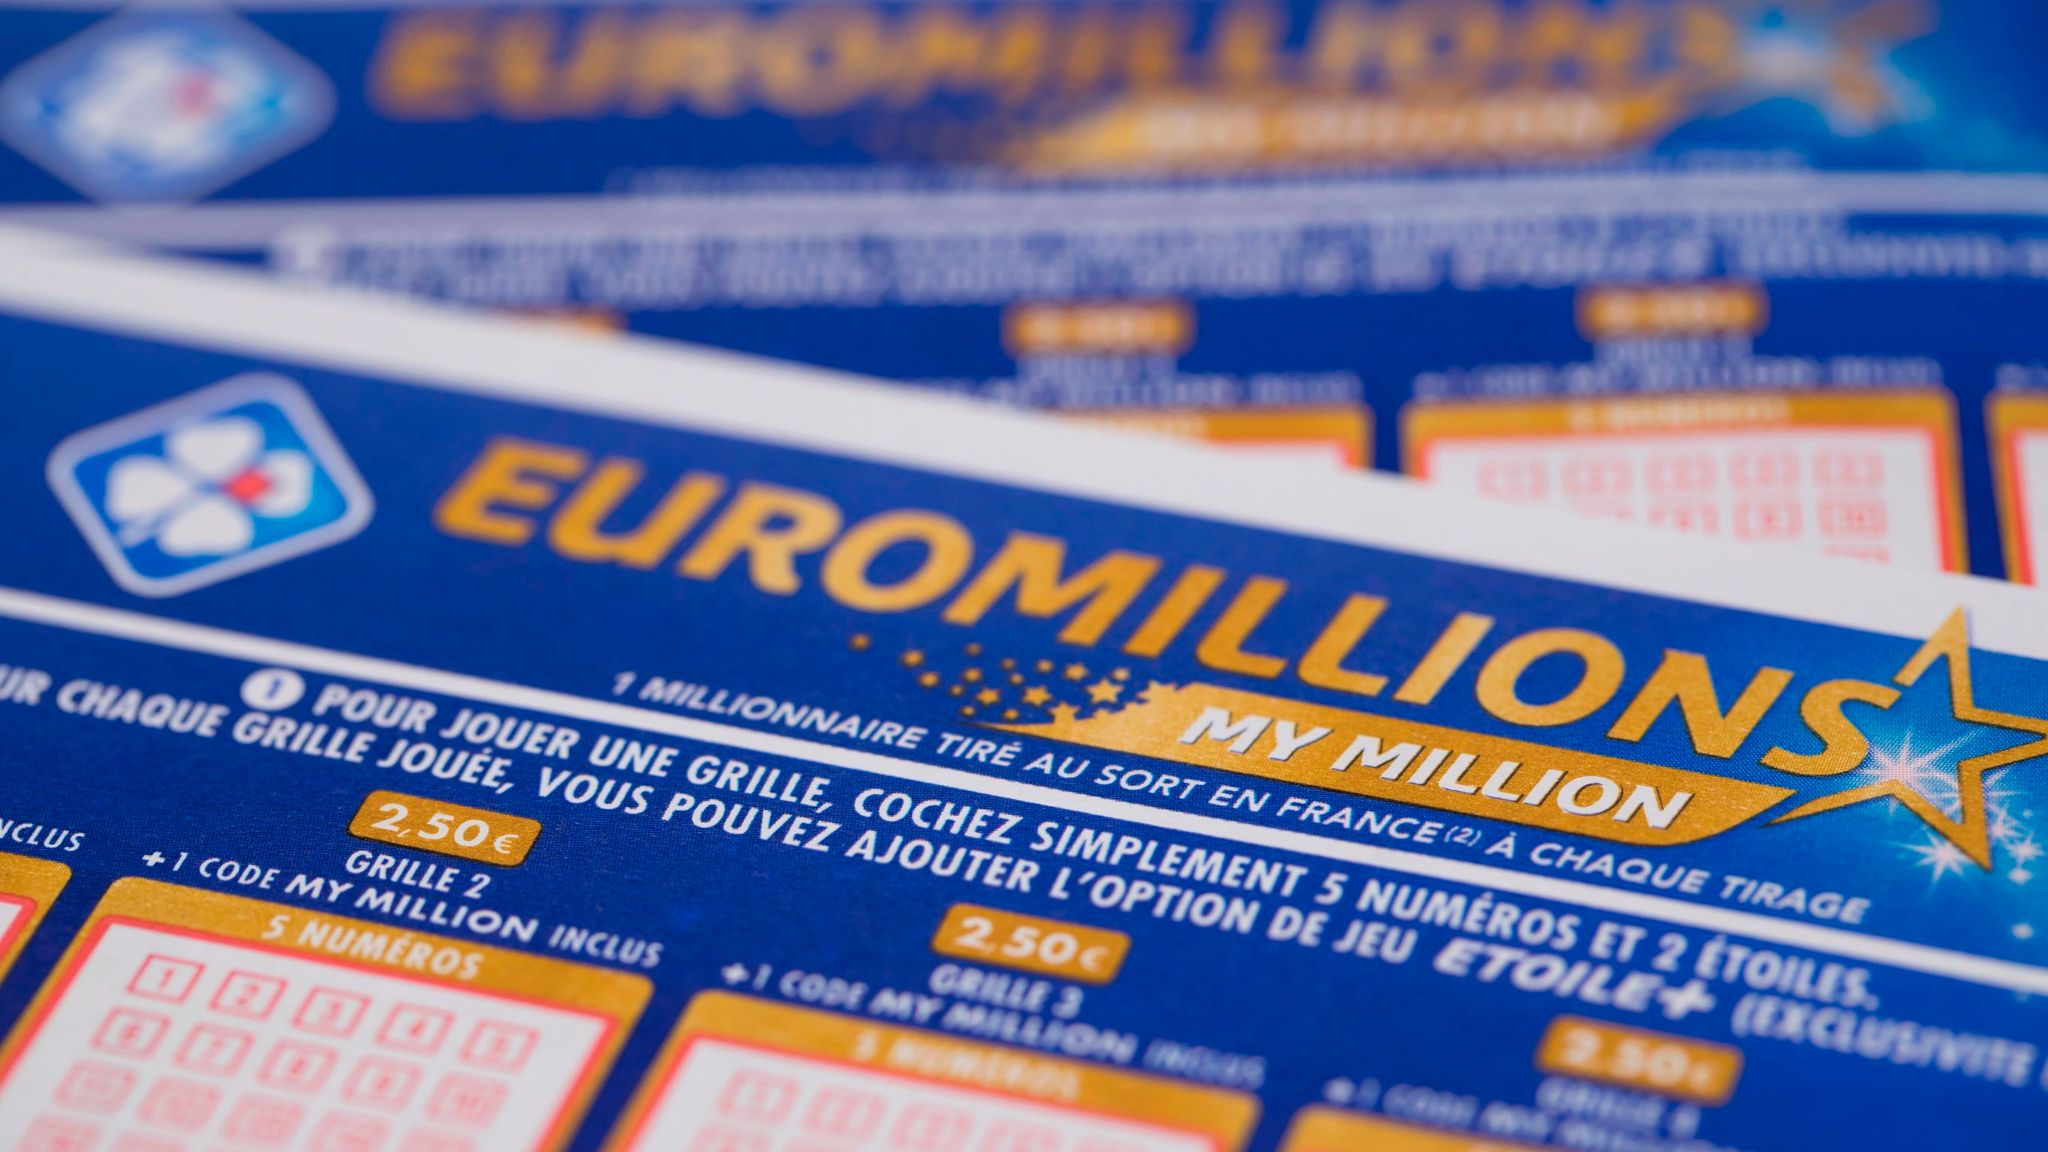 Lotto Euromillions British Ticket Holder Wins 76m On Euromillions Lottery Uk News